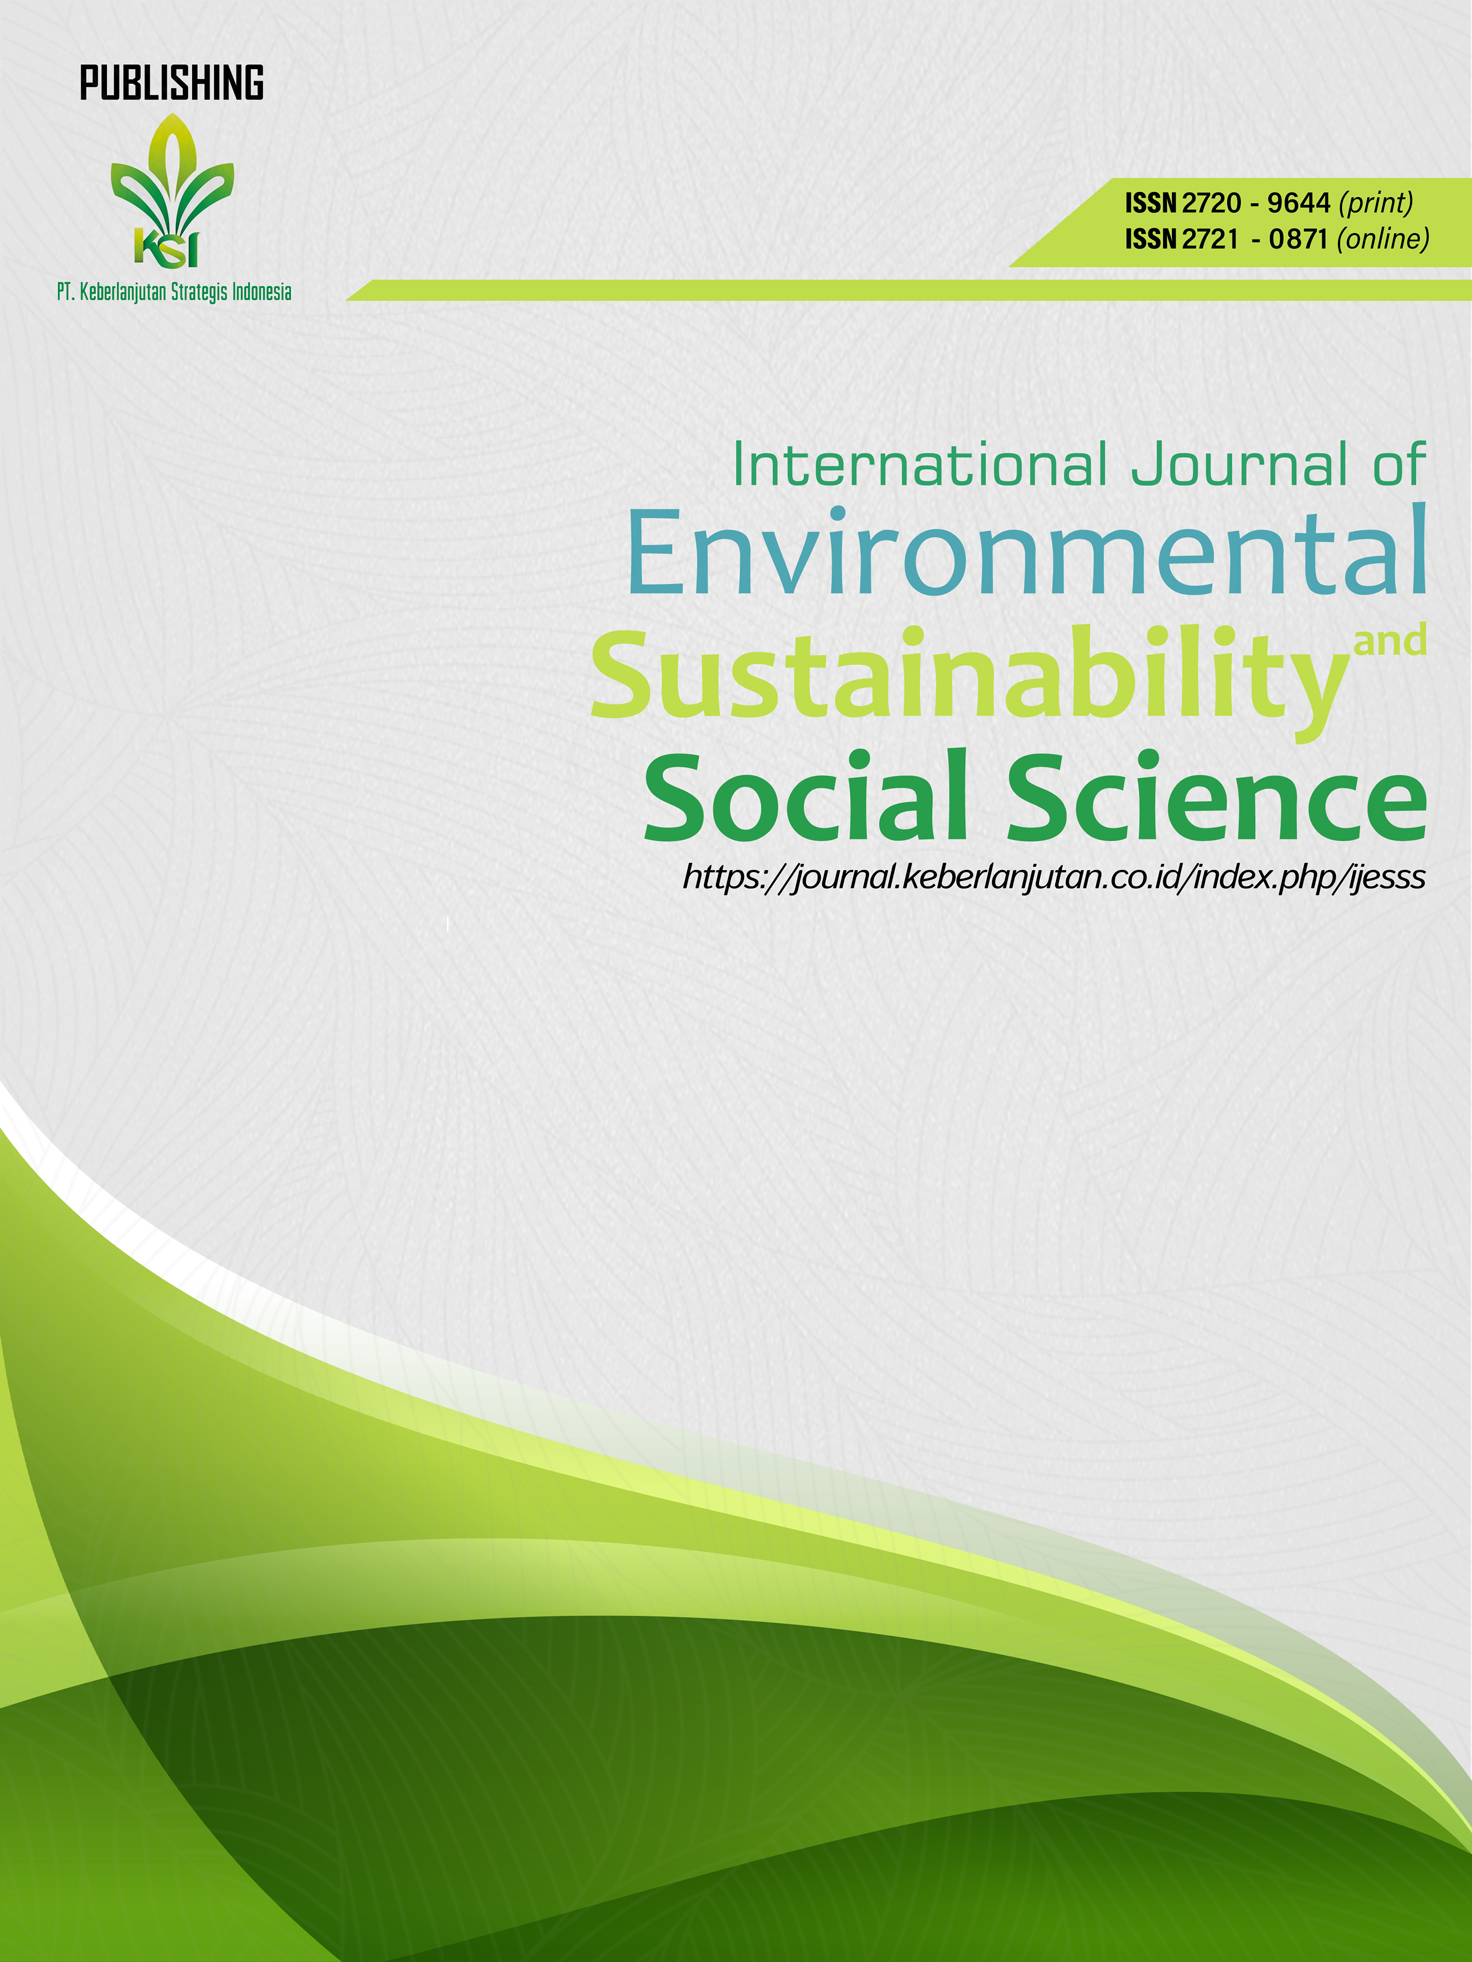 View Vol. 1 No. 3 (2020): International Journal of Environmental, Sustainability, and Social Science